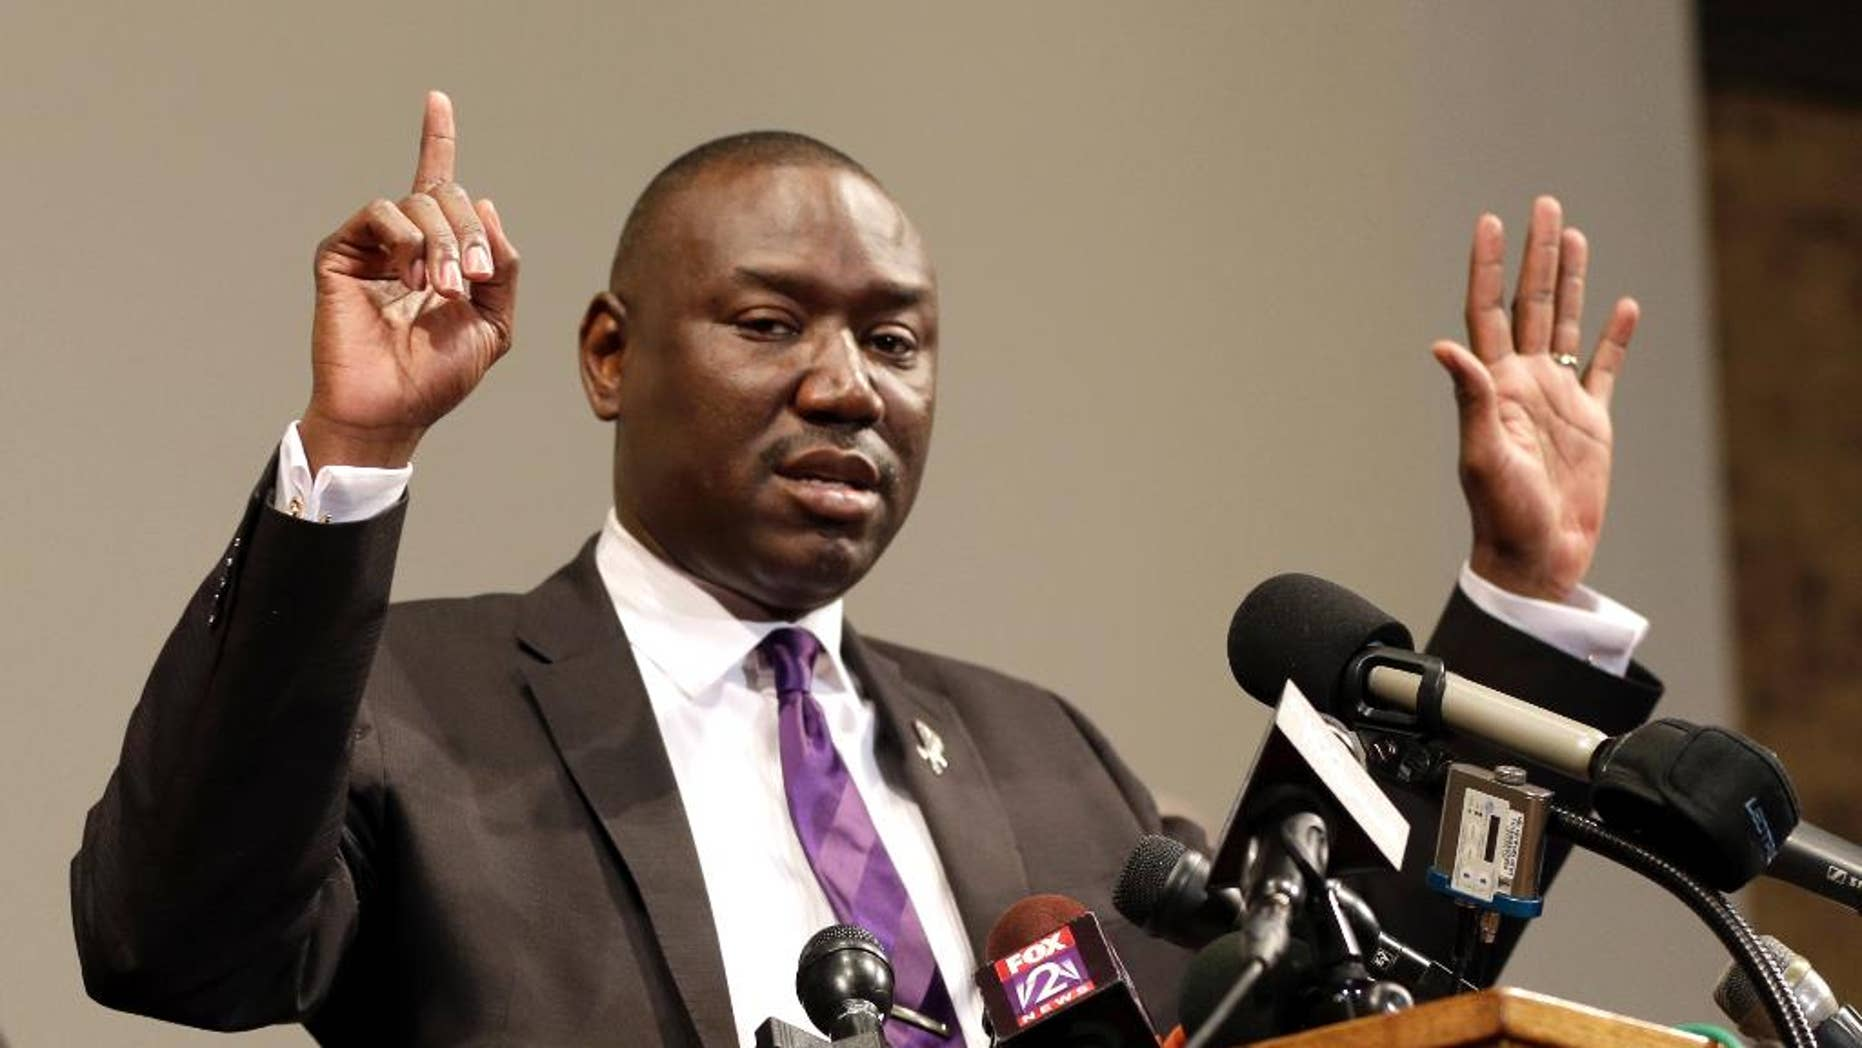 "FILE - In this Monday, Aug. 18, 2014, file photo, Brown family attorney Benjamin Crump speaks during a news conference in St. Louis County, Mo. Legal experts say a cellphone video that shows a witness raising his hands in the air immediately after the fatal shooting of Michael Brown in Ferguson appears to support previous accounts and could bolster arguments that Brown was surrendering when he was shot. Crump said the video is ""the best evidence you can have other than a video of the actual shooting itself."" (AP Photo/Jeff Roberson, File)"